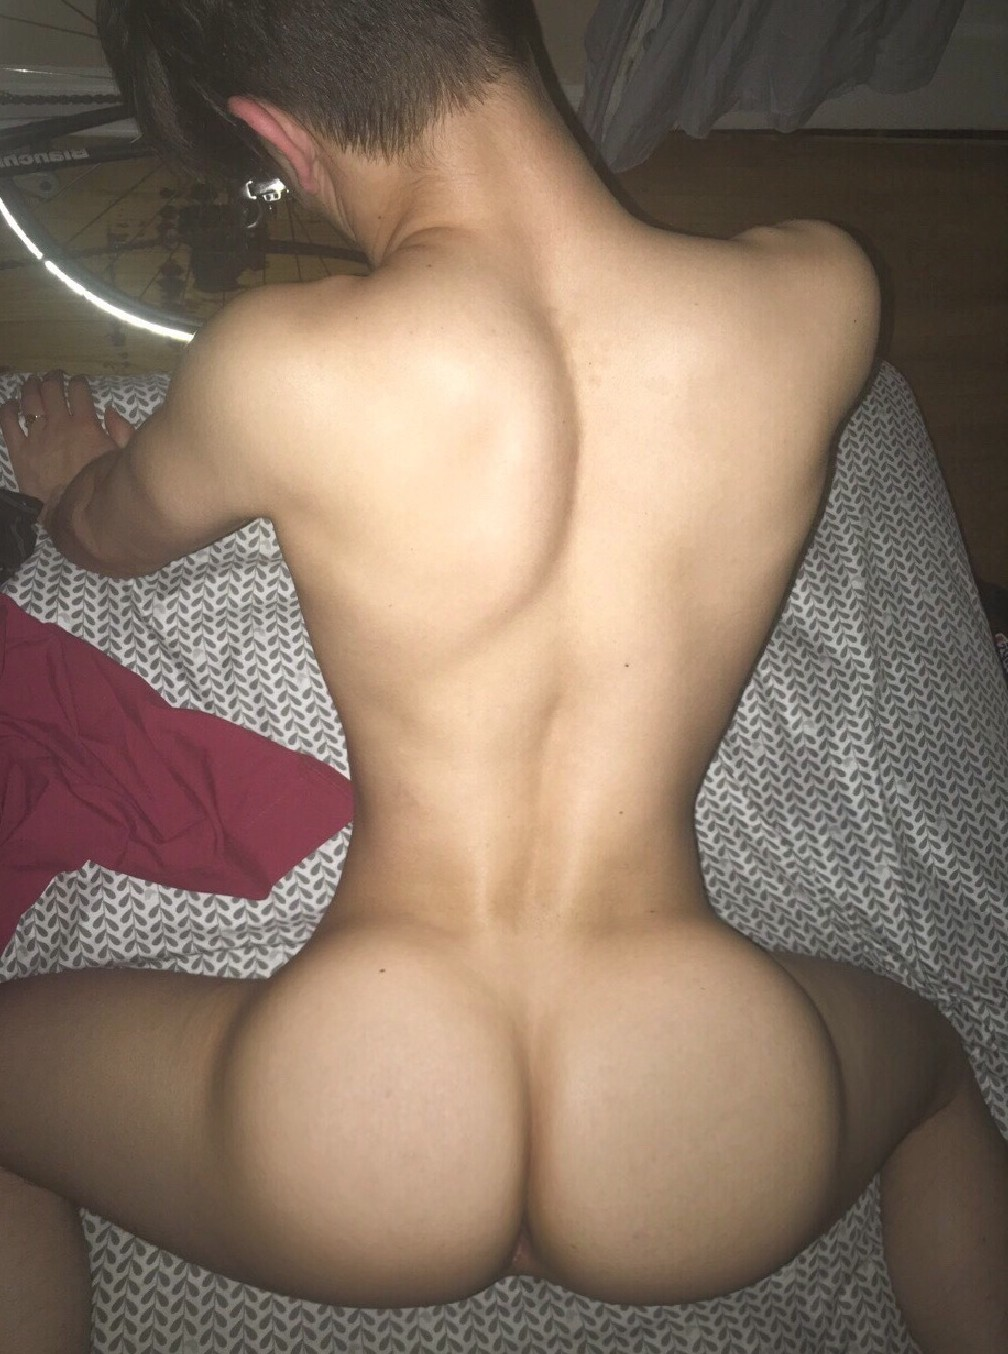 Boy ass on bed nude